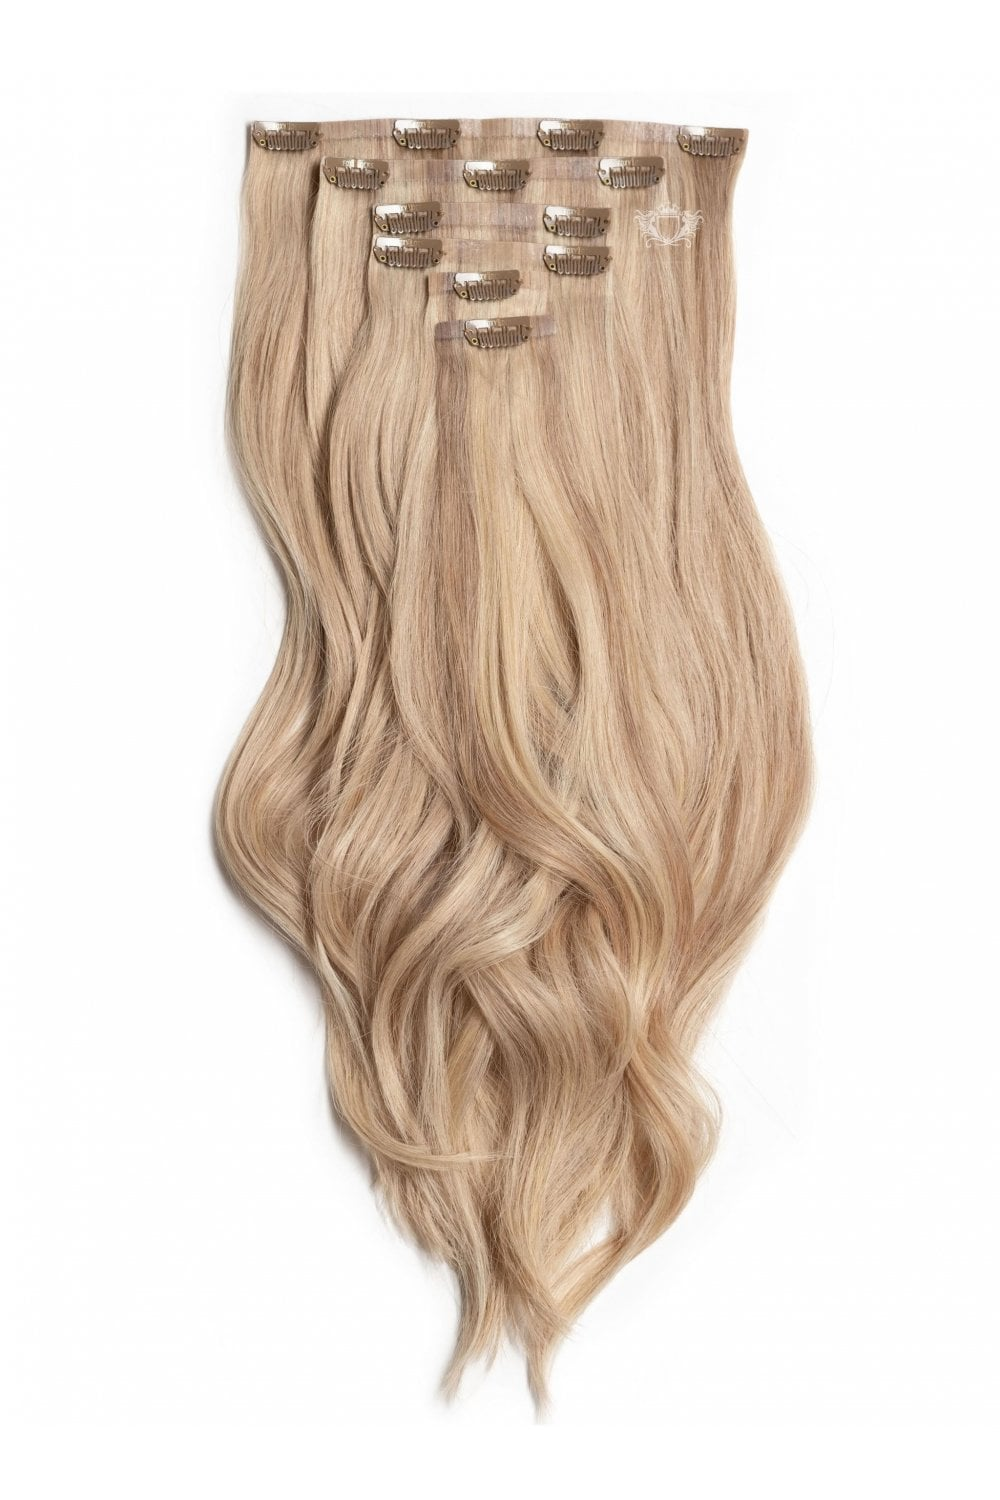 Latte Blonde Seamless Deluxe 20 Clip In Human Hair Extensions